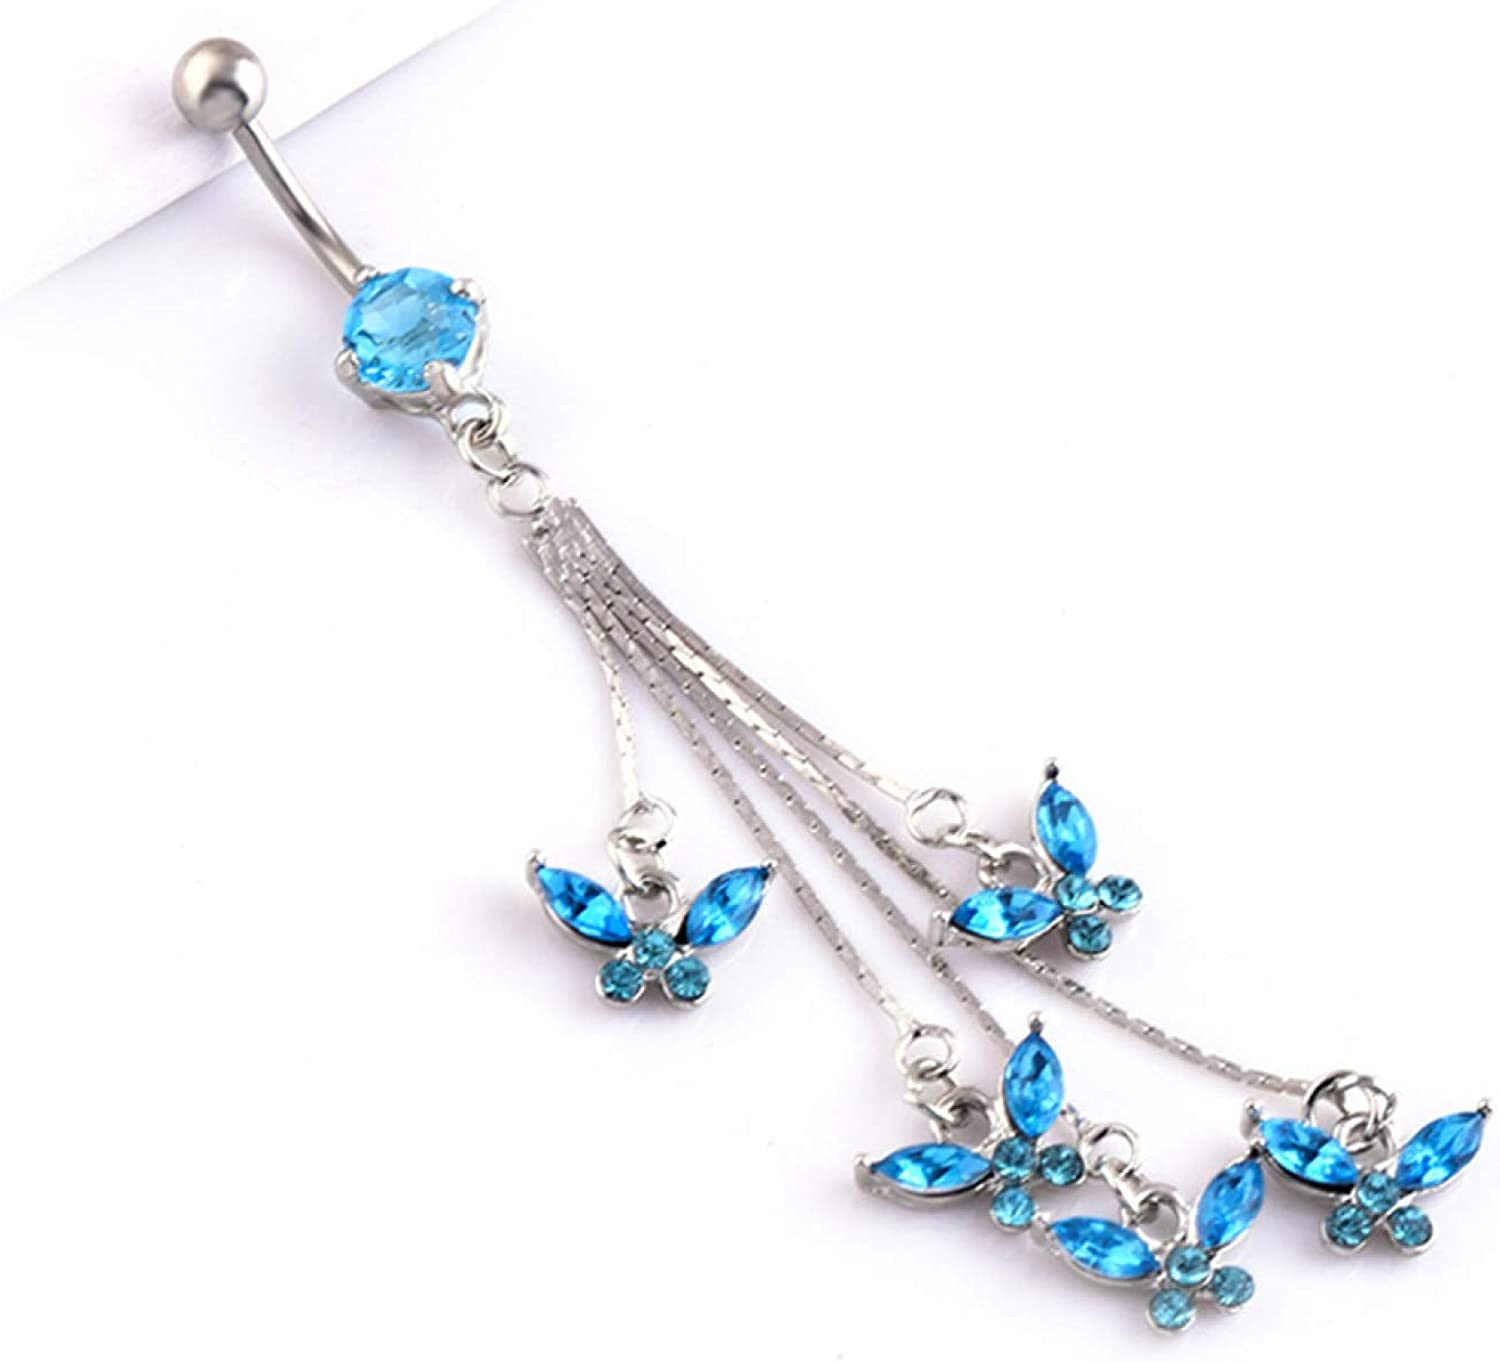 erDouckan Fashion Charming Body Piercing Jewelry for Women Men Valentine's Day Boy Girl Friend 14G 316L Surgical Steel Sexy Butterfly Rhinestone Dangle Navel Belly Button Ring